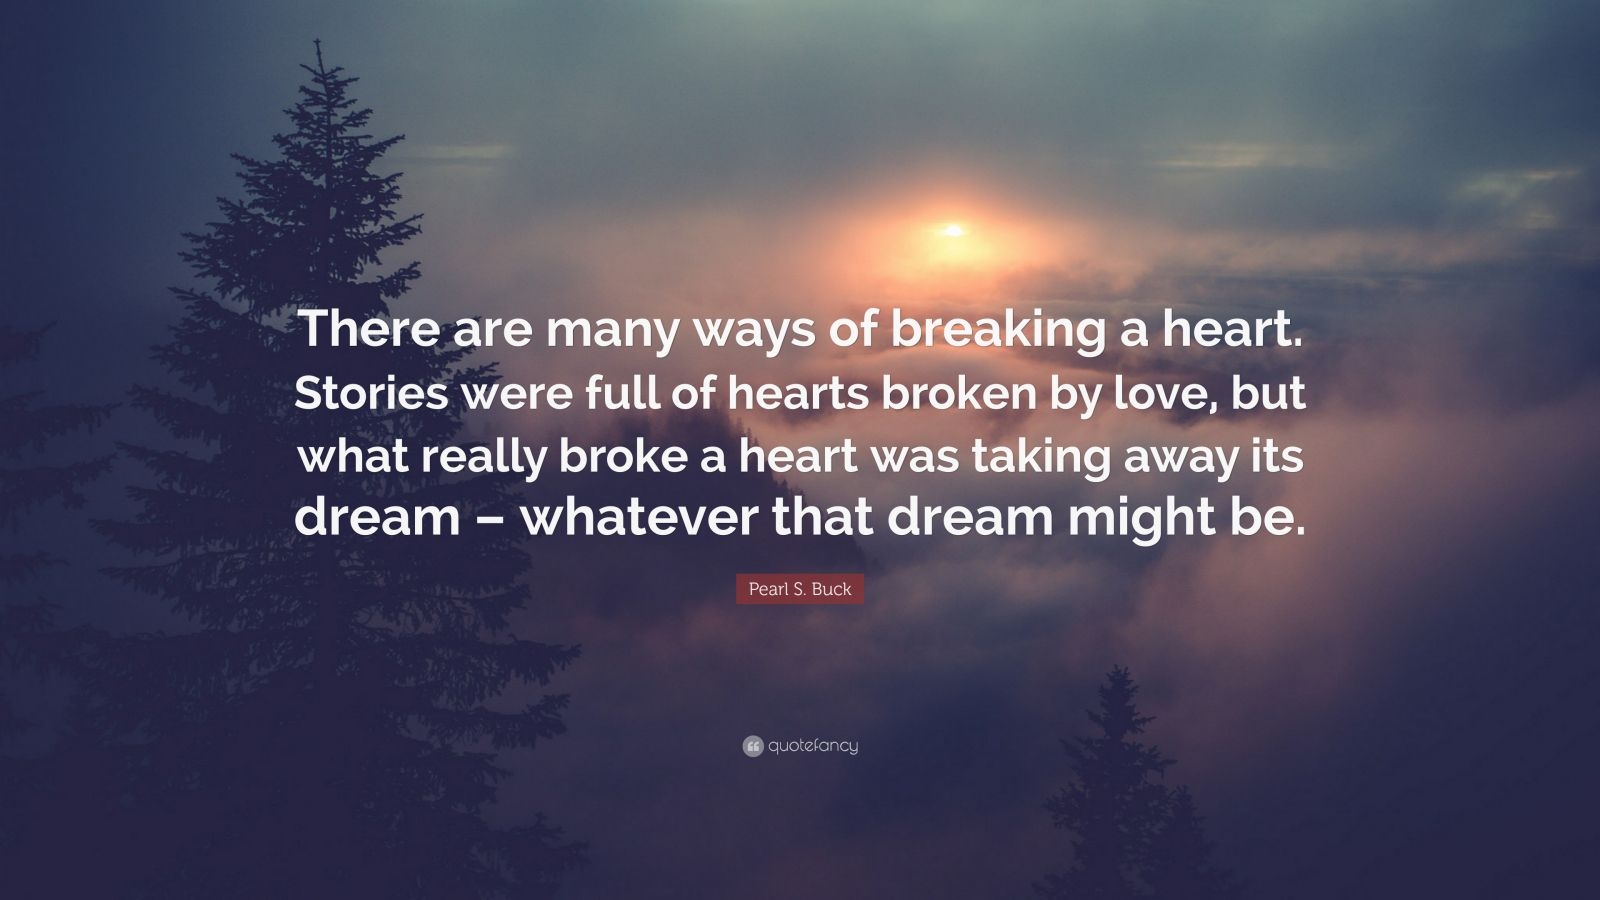 Quotes - Page 2 4823136-Pearl-S-Buck-Quote-There-are-many-ways-of-breaking-a-heart-Stories